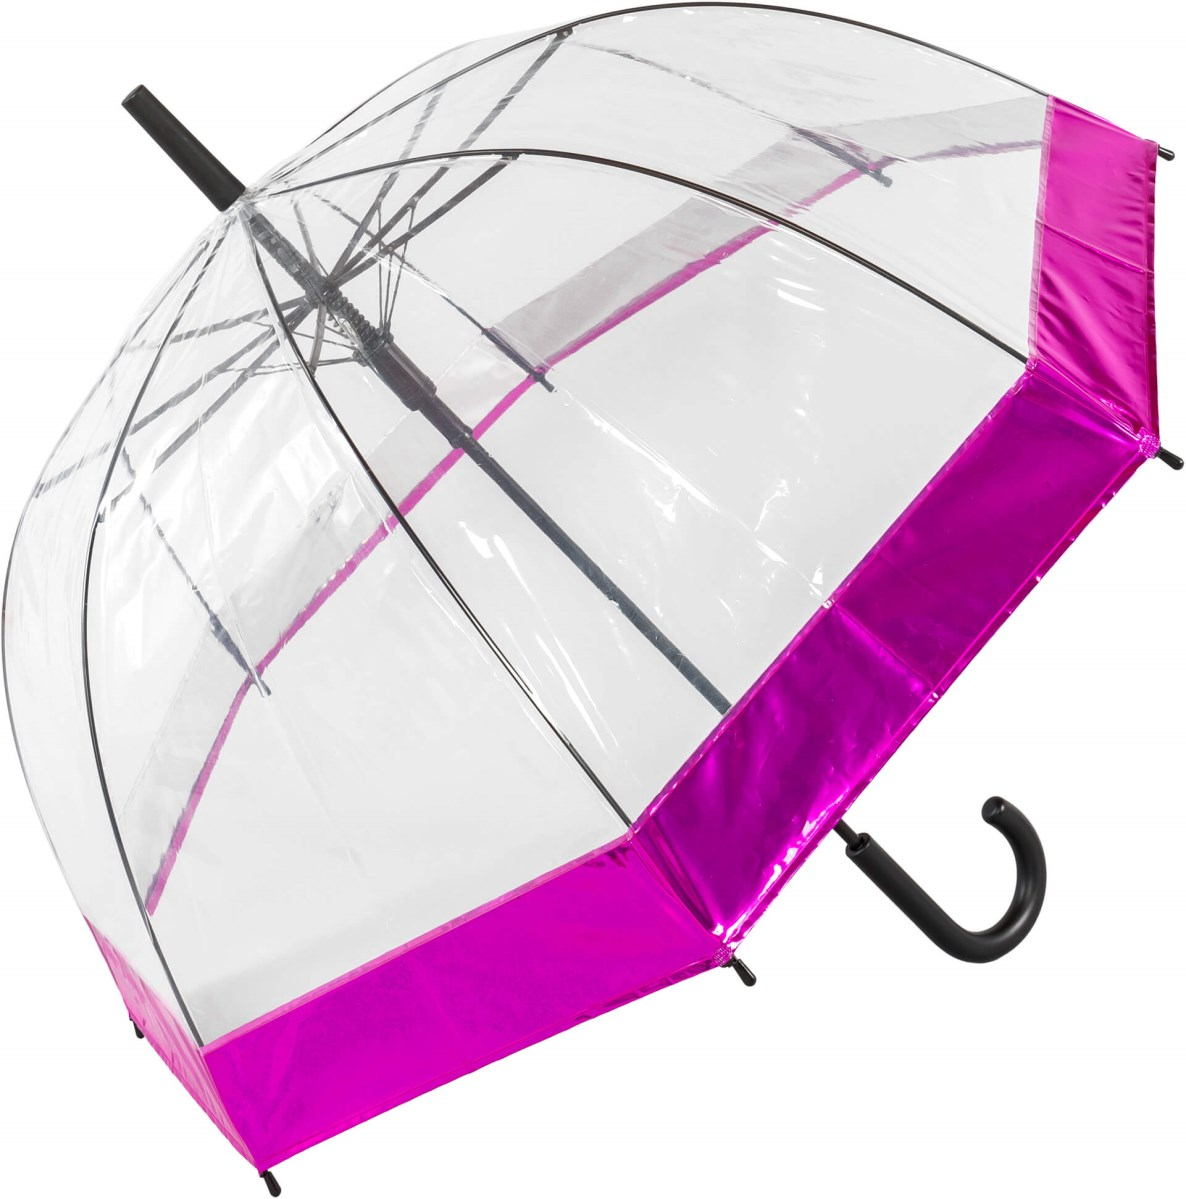 Clear Dome Umbrella with Metallic Pink Border (18020)